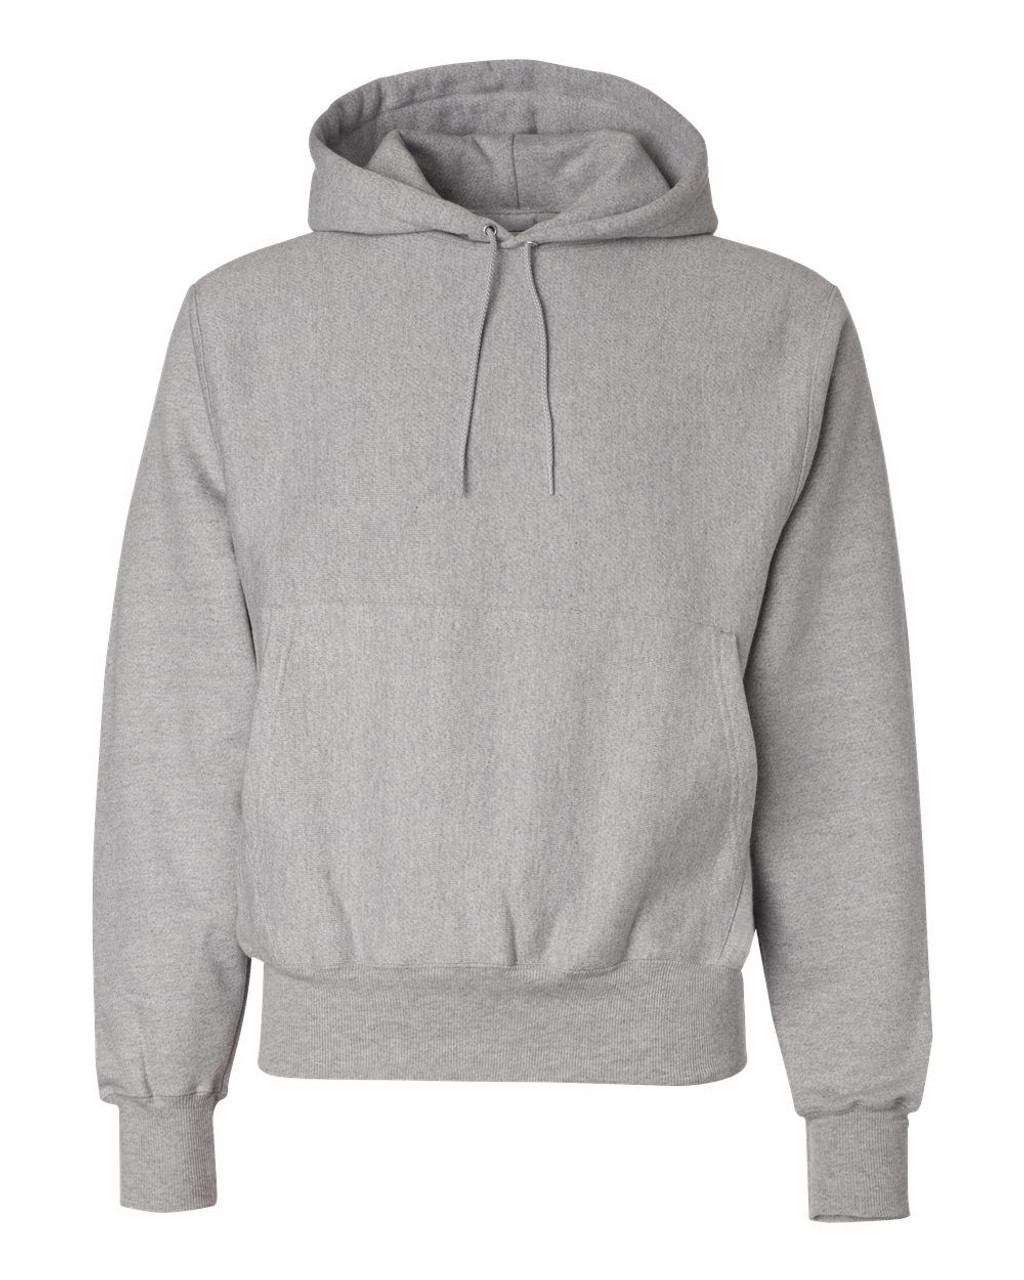 Champion Hoodie Reverse Weave Hooded Sweatshirt Pullover Athletic New S101